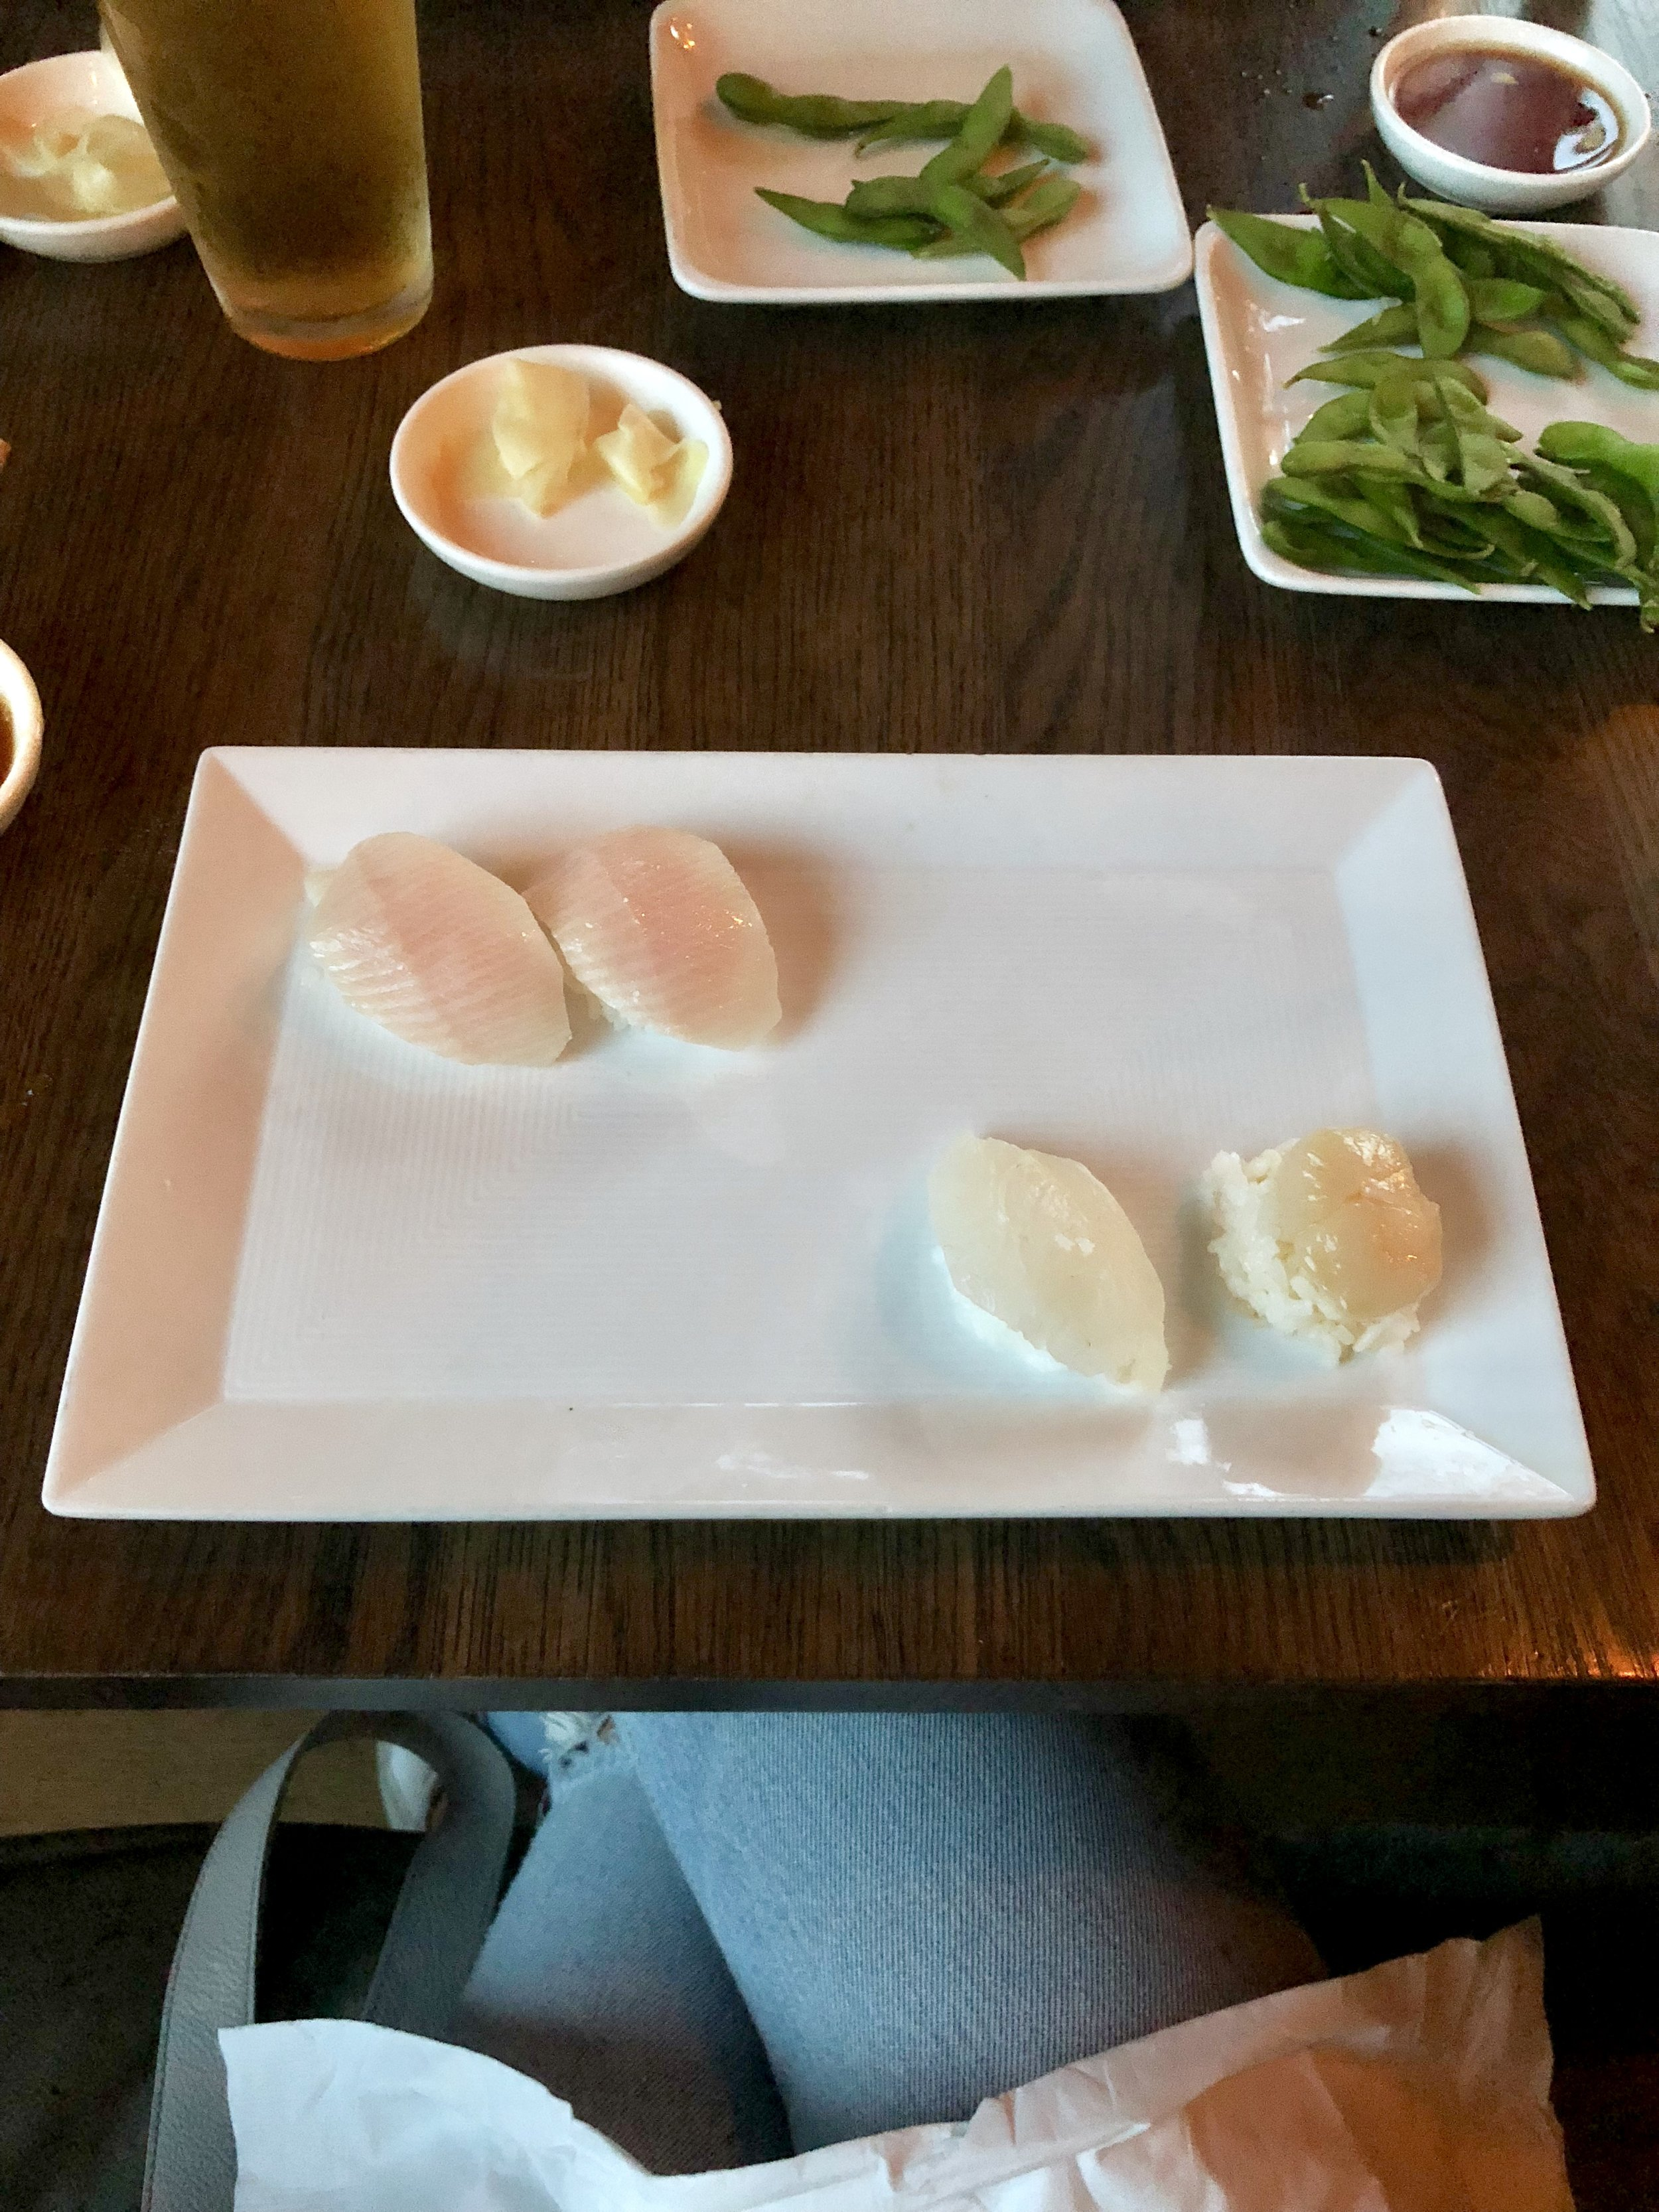 yellowtail, snapper, and scallop sushi